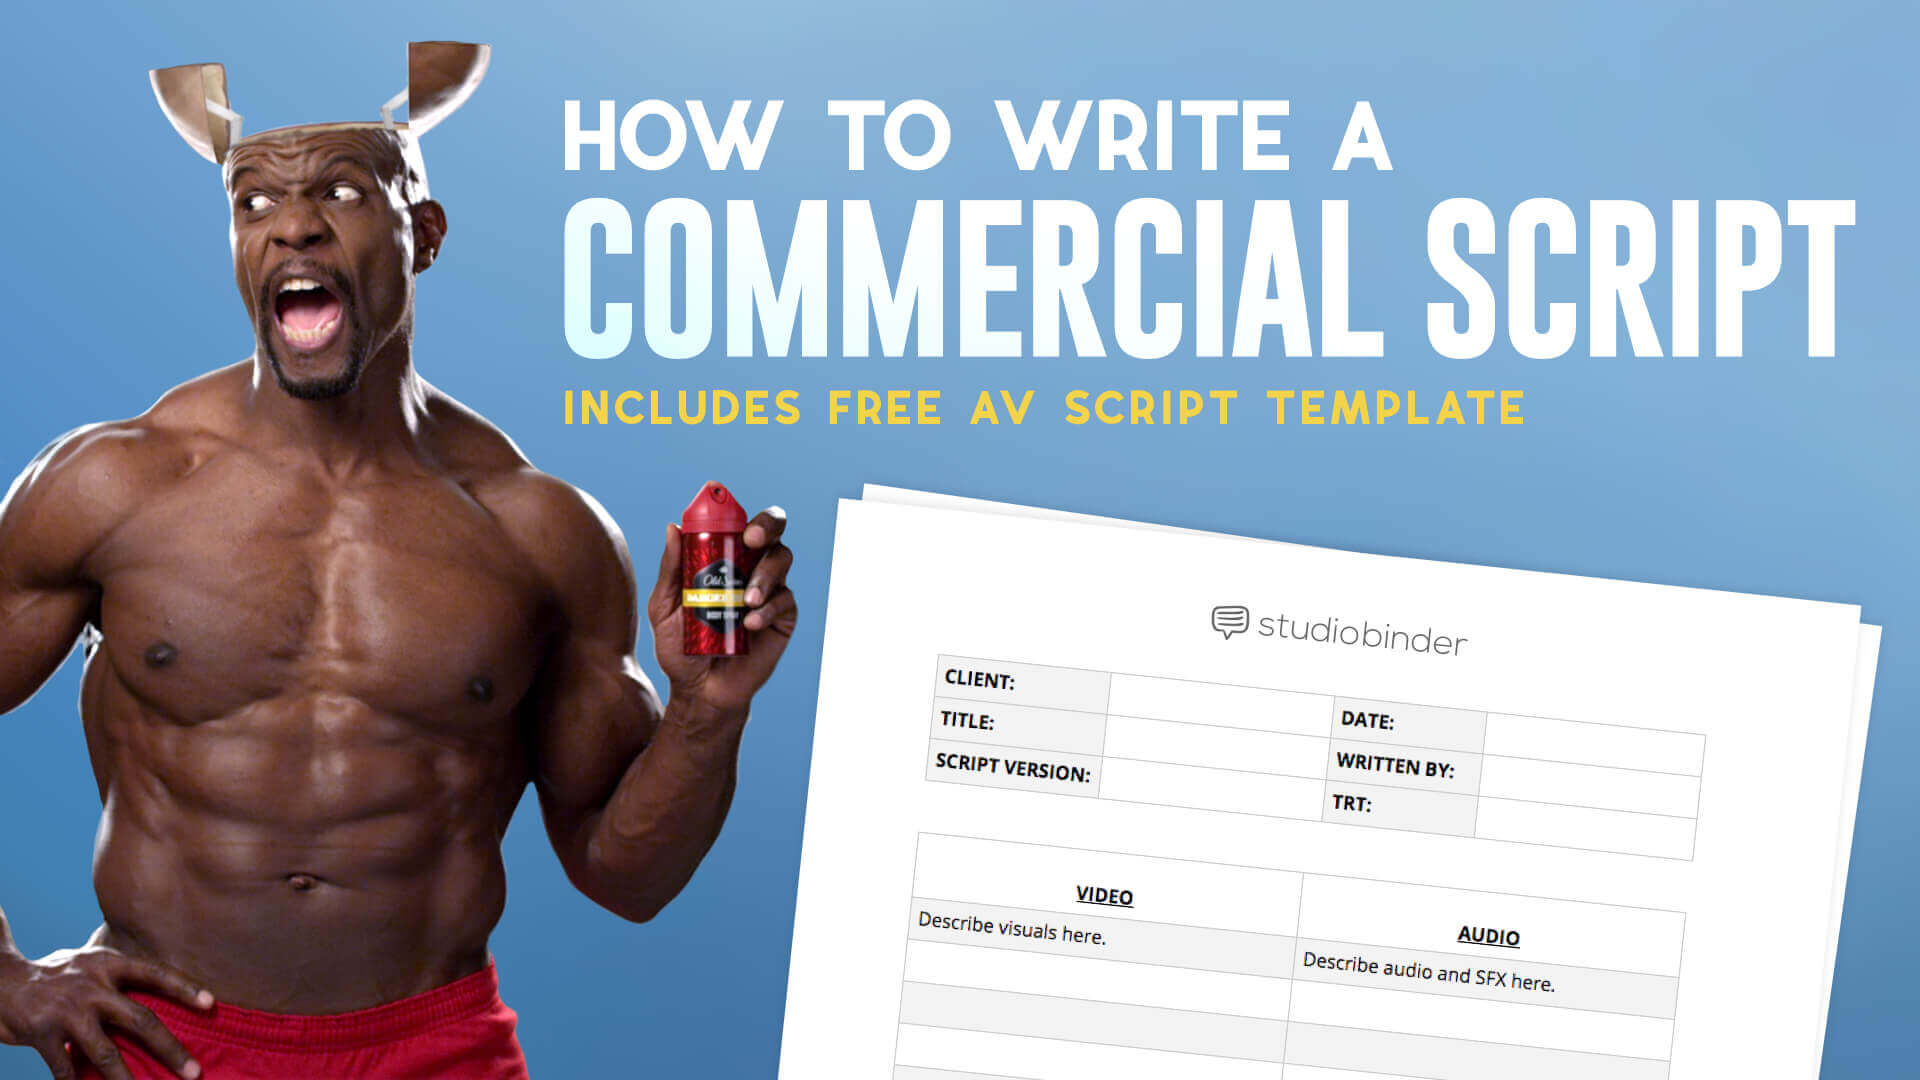 Writing a commercial can be intimidating. But if you use an AV script template, and firm up on your message and audience, you can write one like the pros.